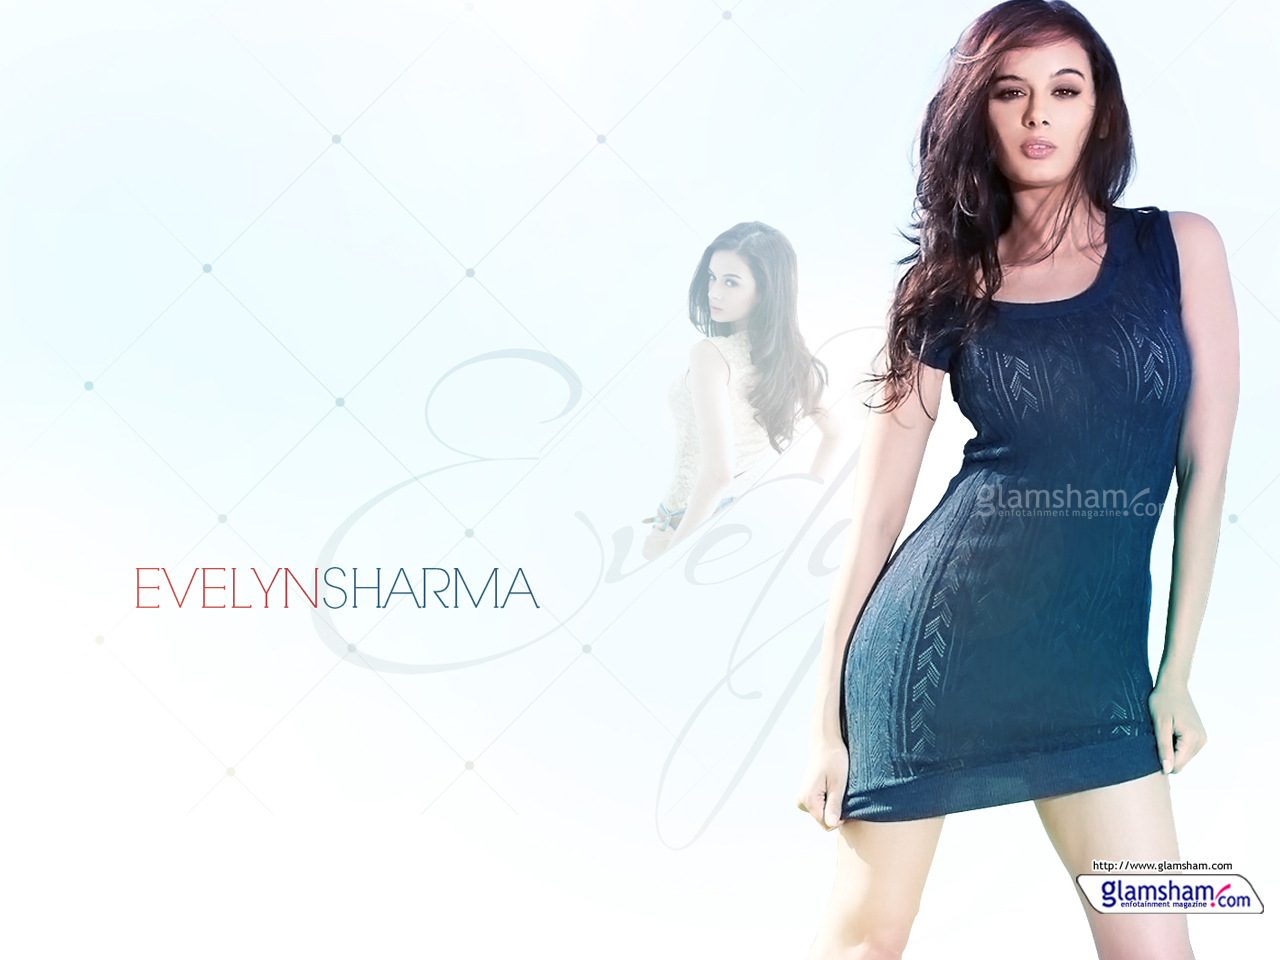 1280x960 - Evelyn Sharma Wallpapers 17